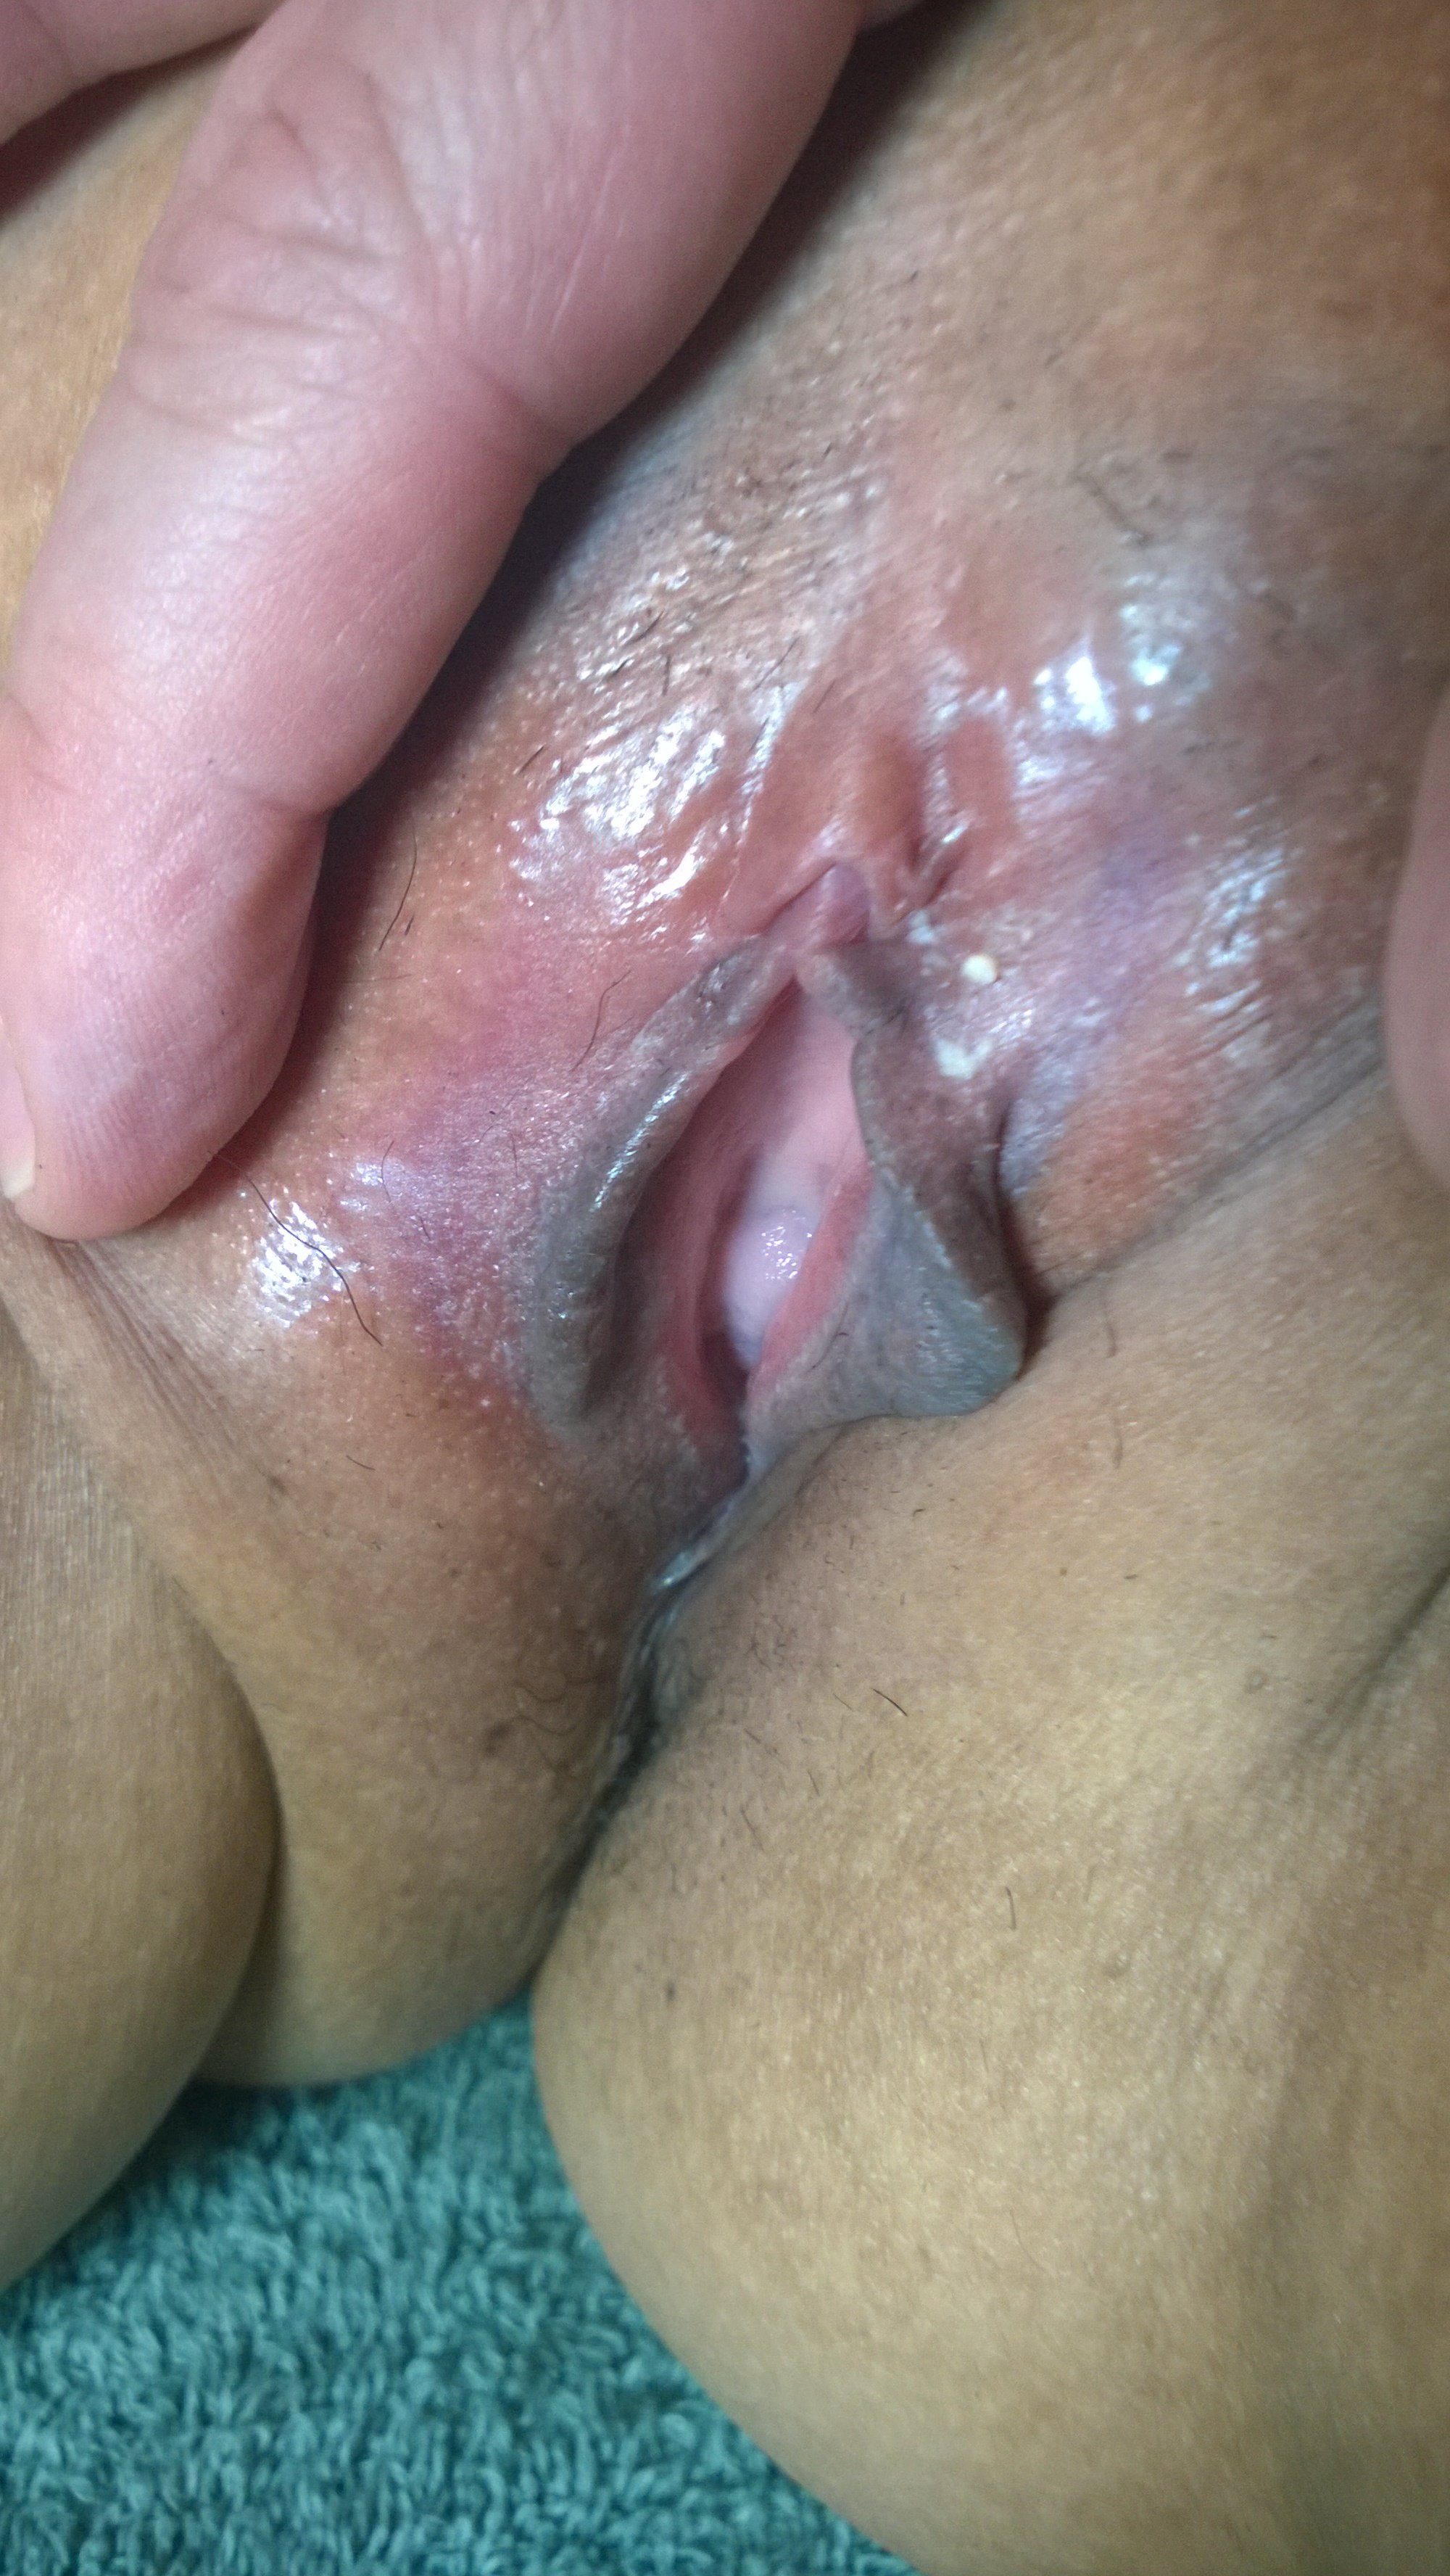 Spread_Mature_Asian_Pussy_3